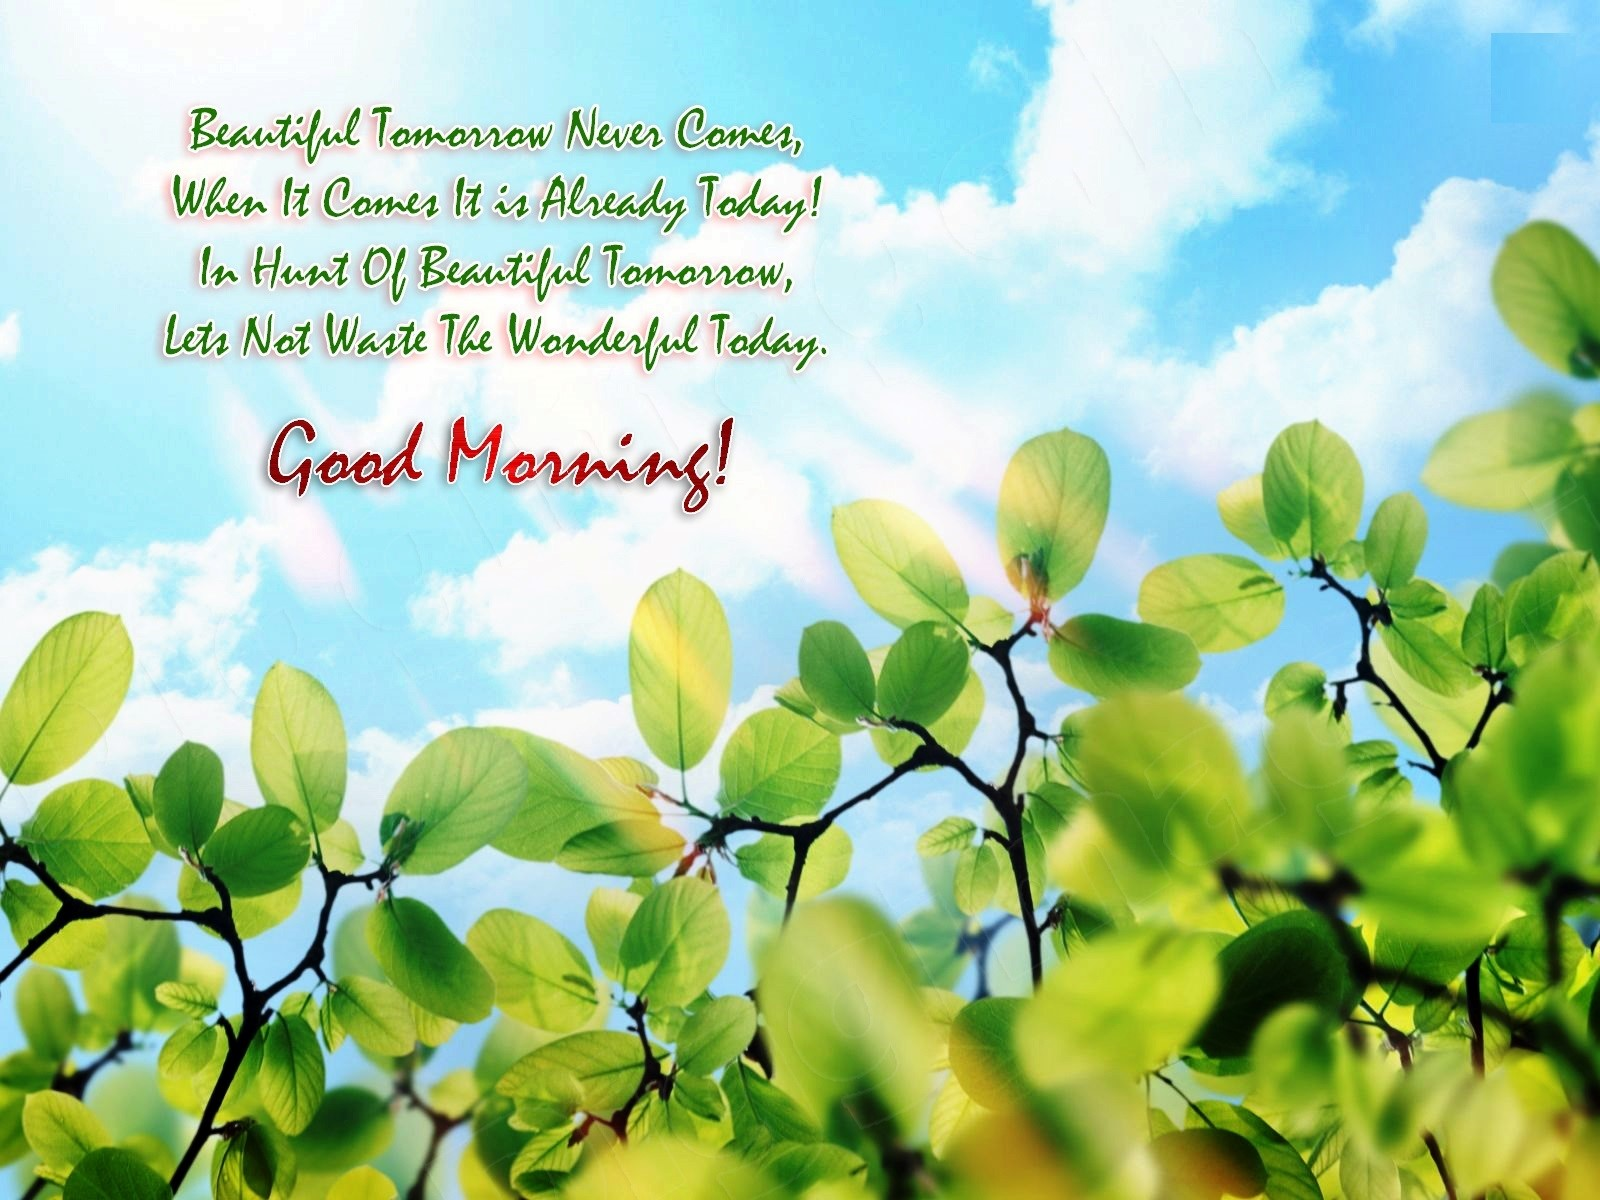 Good Morning Images New Hd Quotes - HD Wallpaper